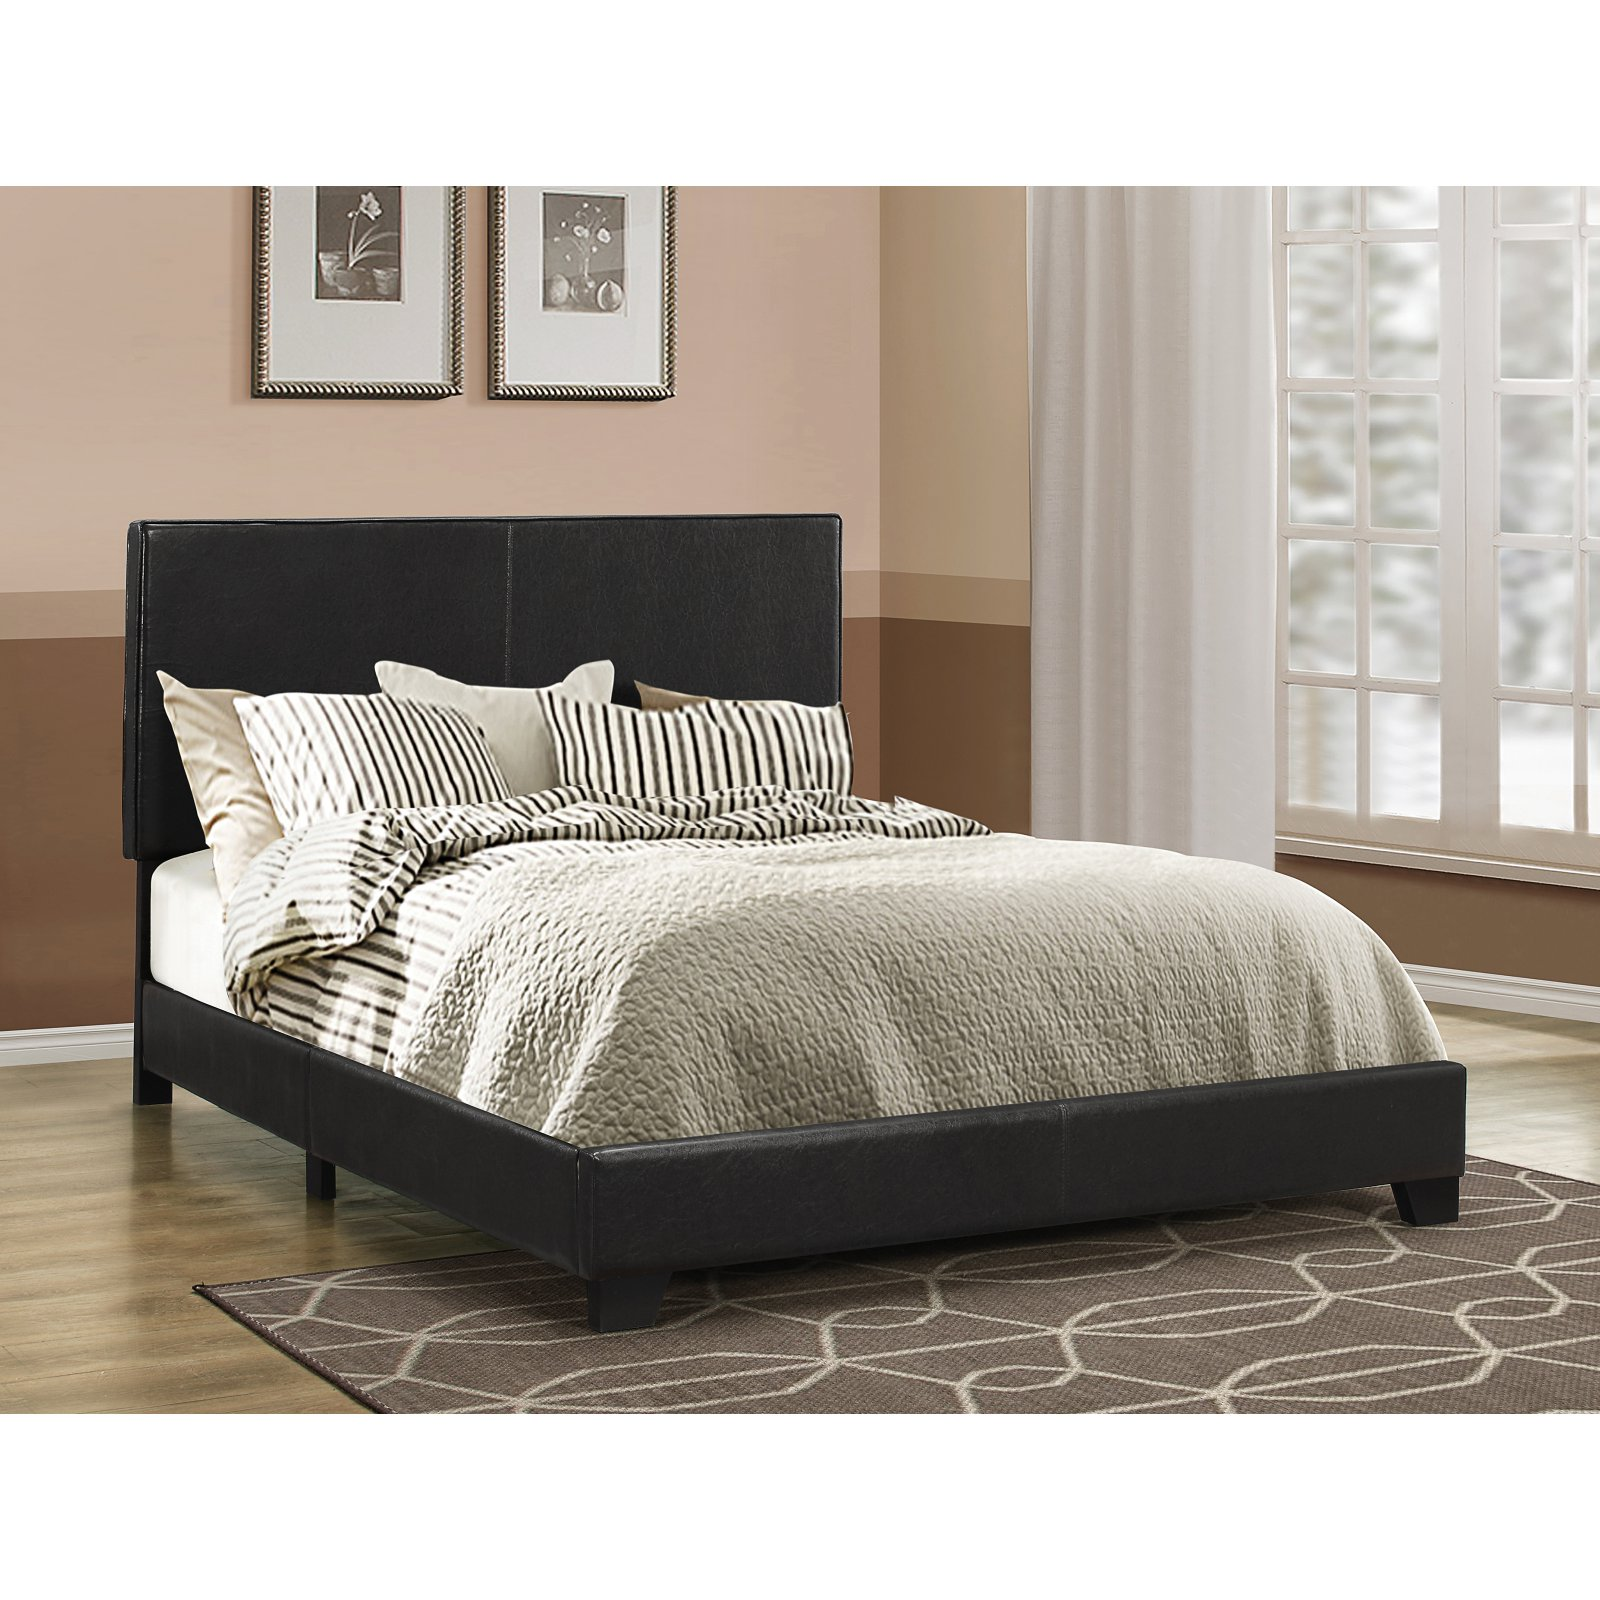 Dorian Upholstered Bed in Black (Queen)